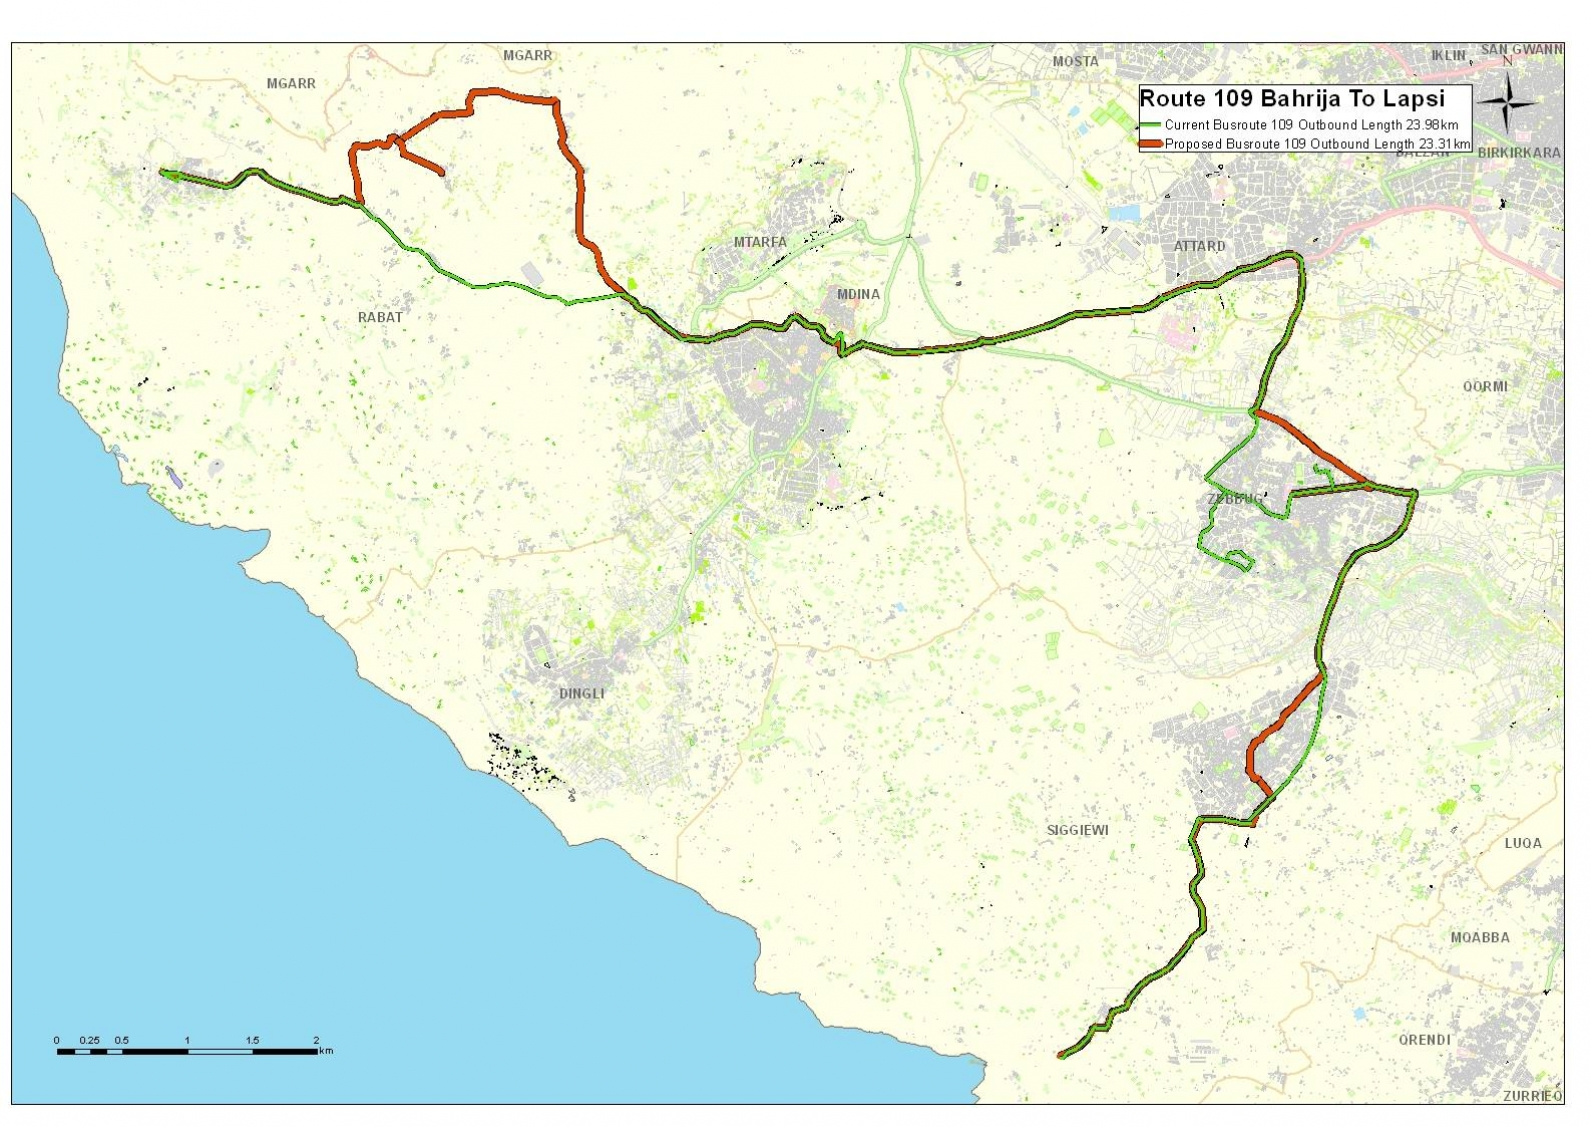 Land-current-network-routes-and-schedules-Dingli-Mtarfa-Rabat-13